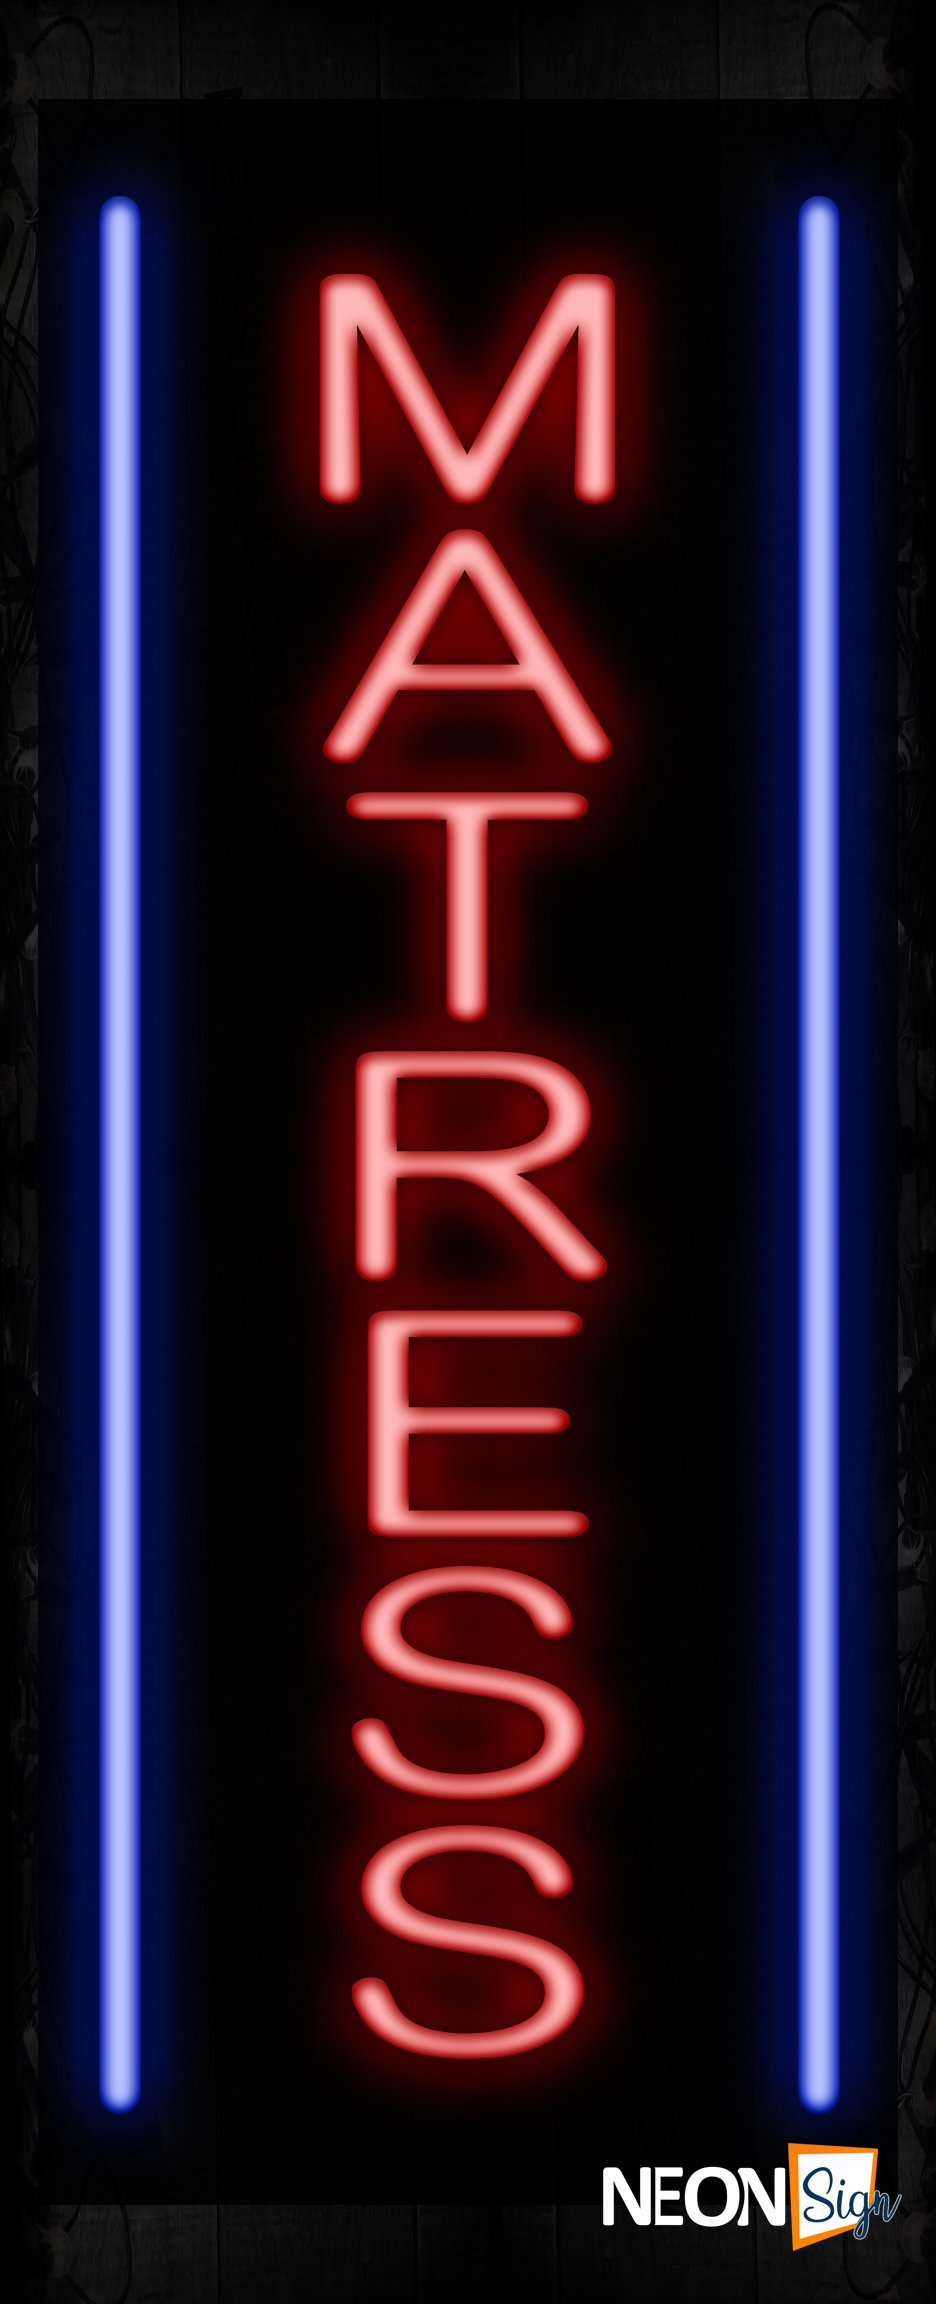 Image of 11590 Mattress in red with blue border Neon Sign_32 x12 Black Backing